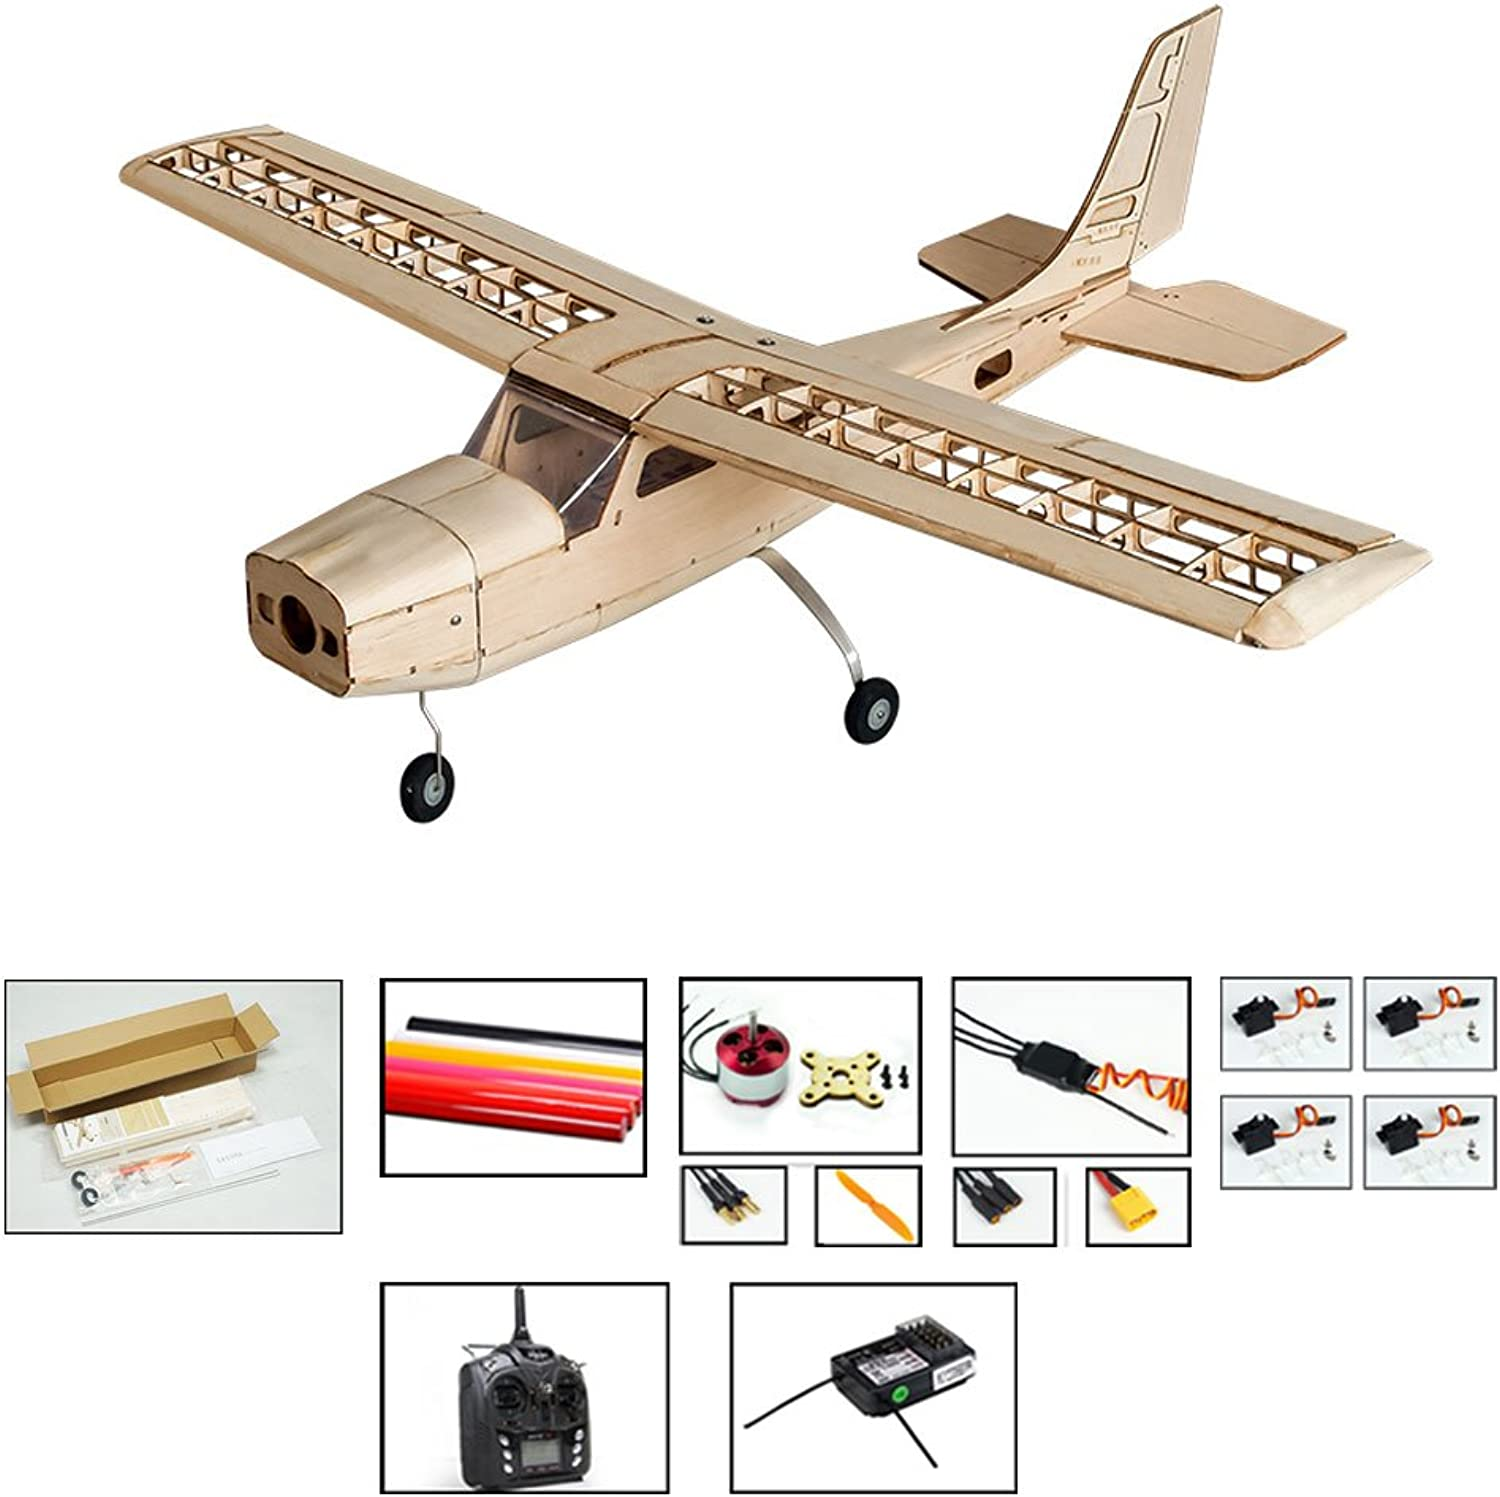 Dancing Wings Hobby S16 Balsa wood Electric Training Airplane CESSNA 150 Kit 1000mm Wingspan need to built Airplane Basswood 4CH Radio Controlled Laser-cutting Aeroplane Un-assembled (S1604B-L2)